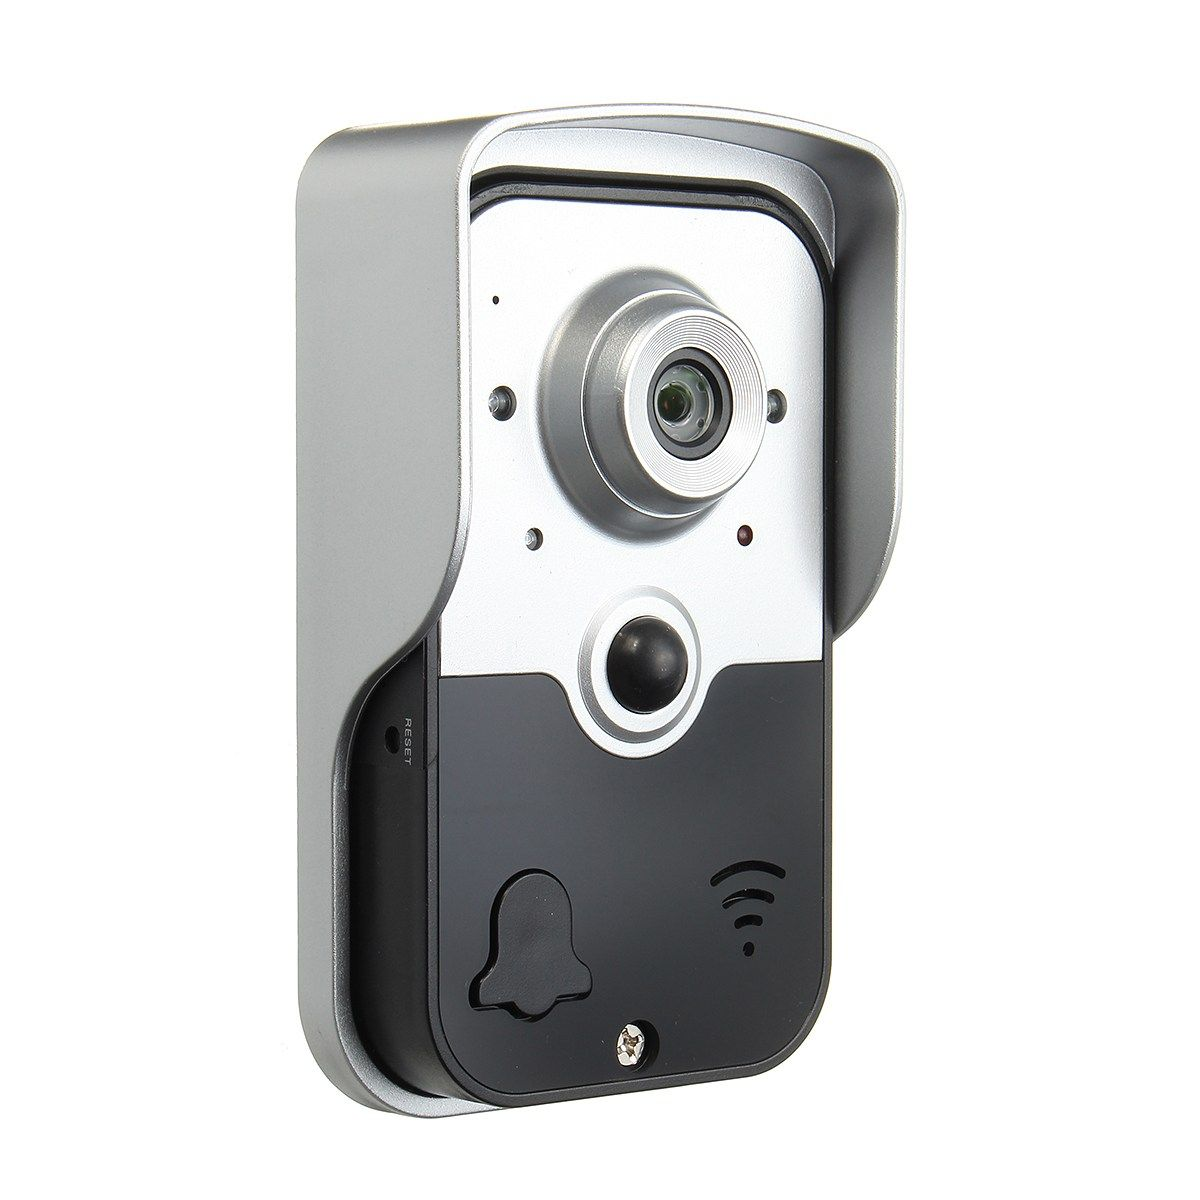 Meilleur Camera Ip Exterieur Camera Maison Wifi Affordable Camera Ip Castorama Free